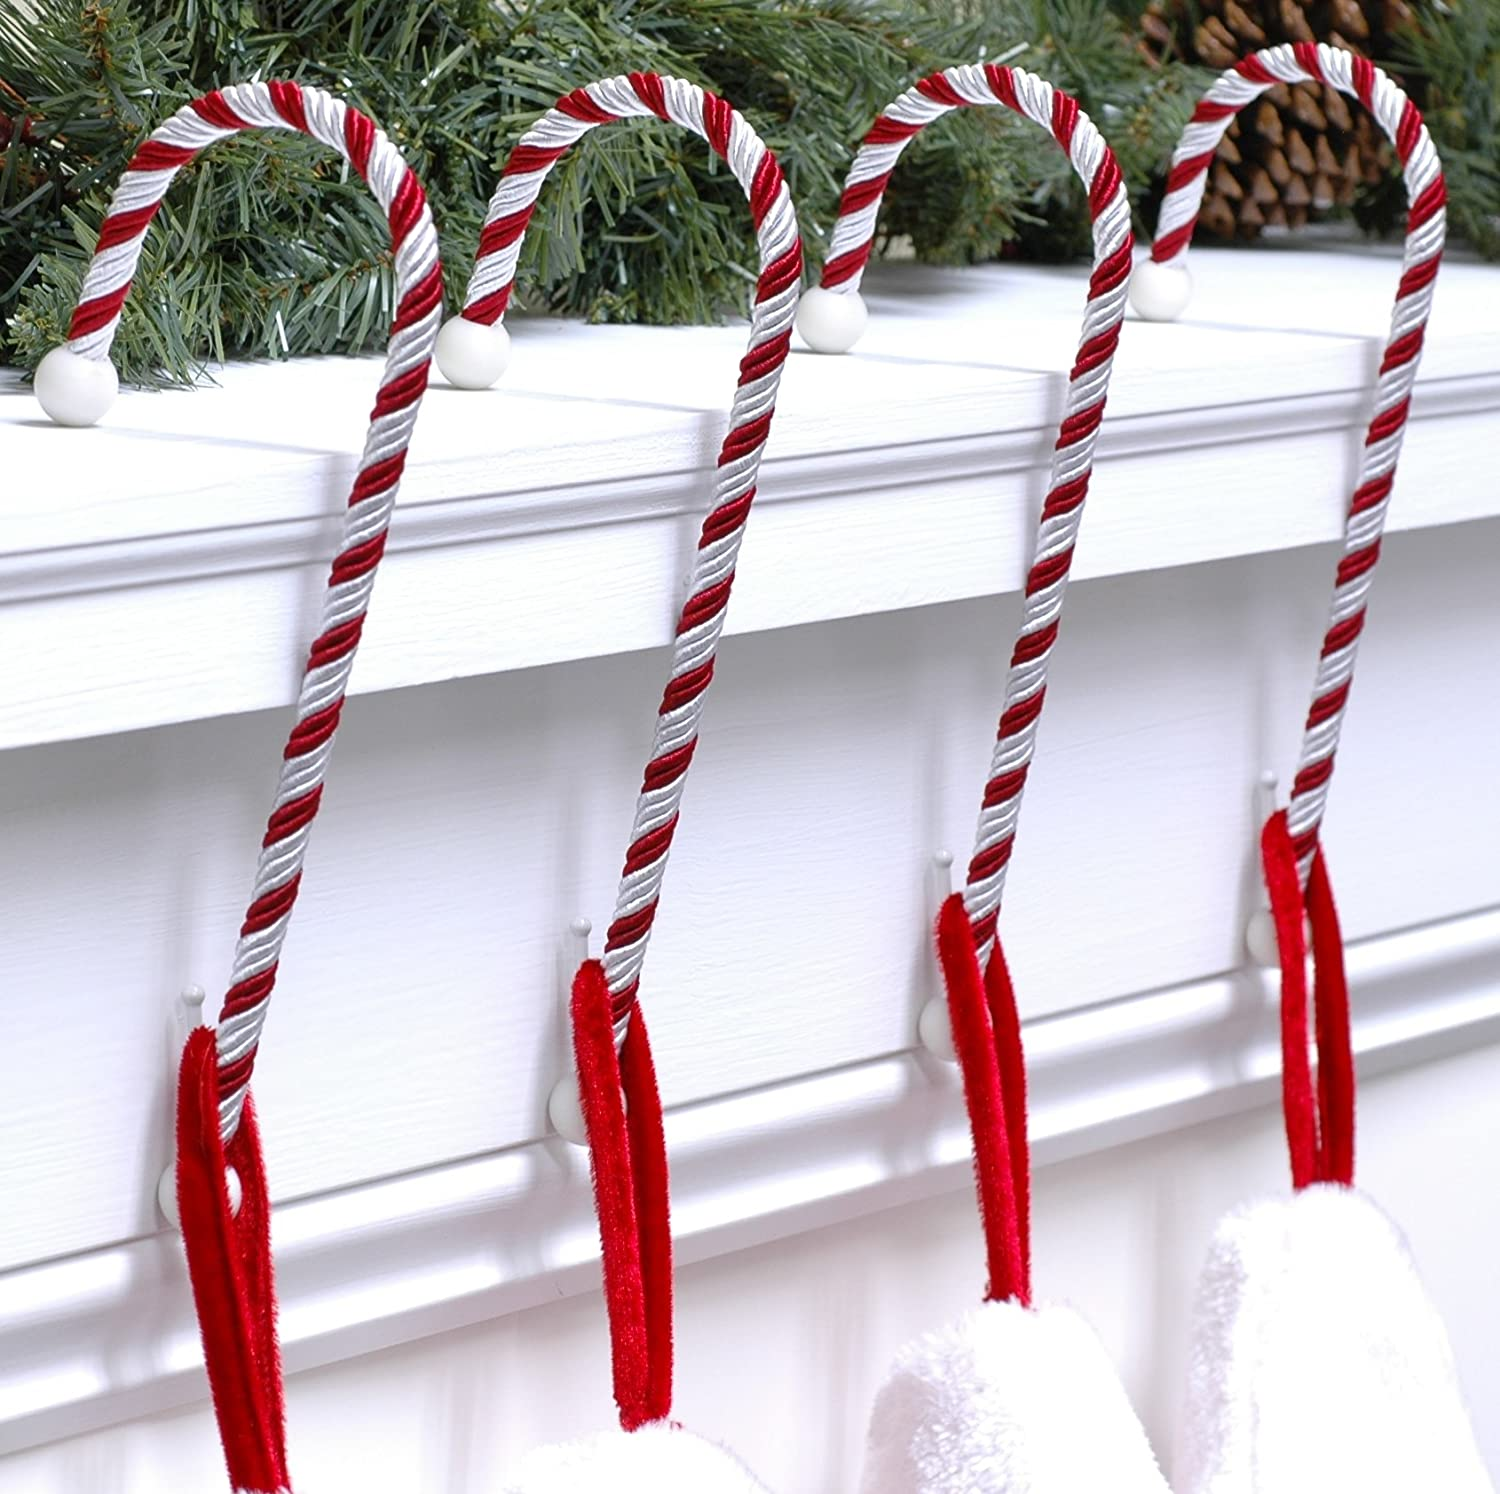 amazoncom haute decor cc0402r candy cane stocking holder 4 pack classic red and white home kitchen